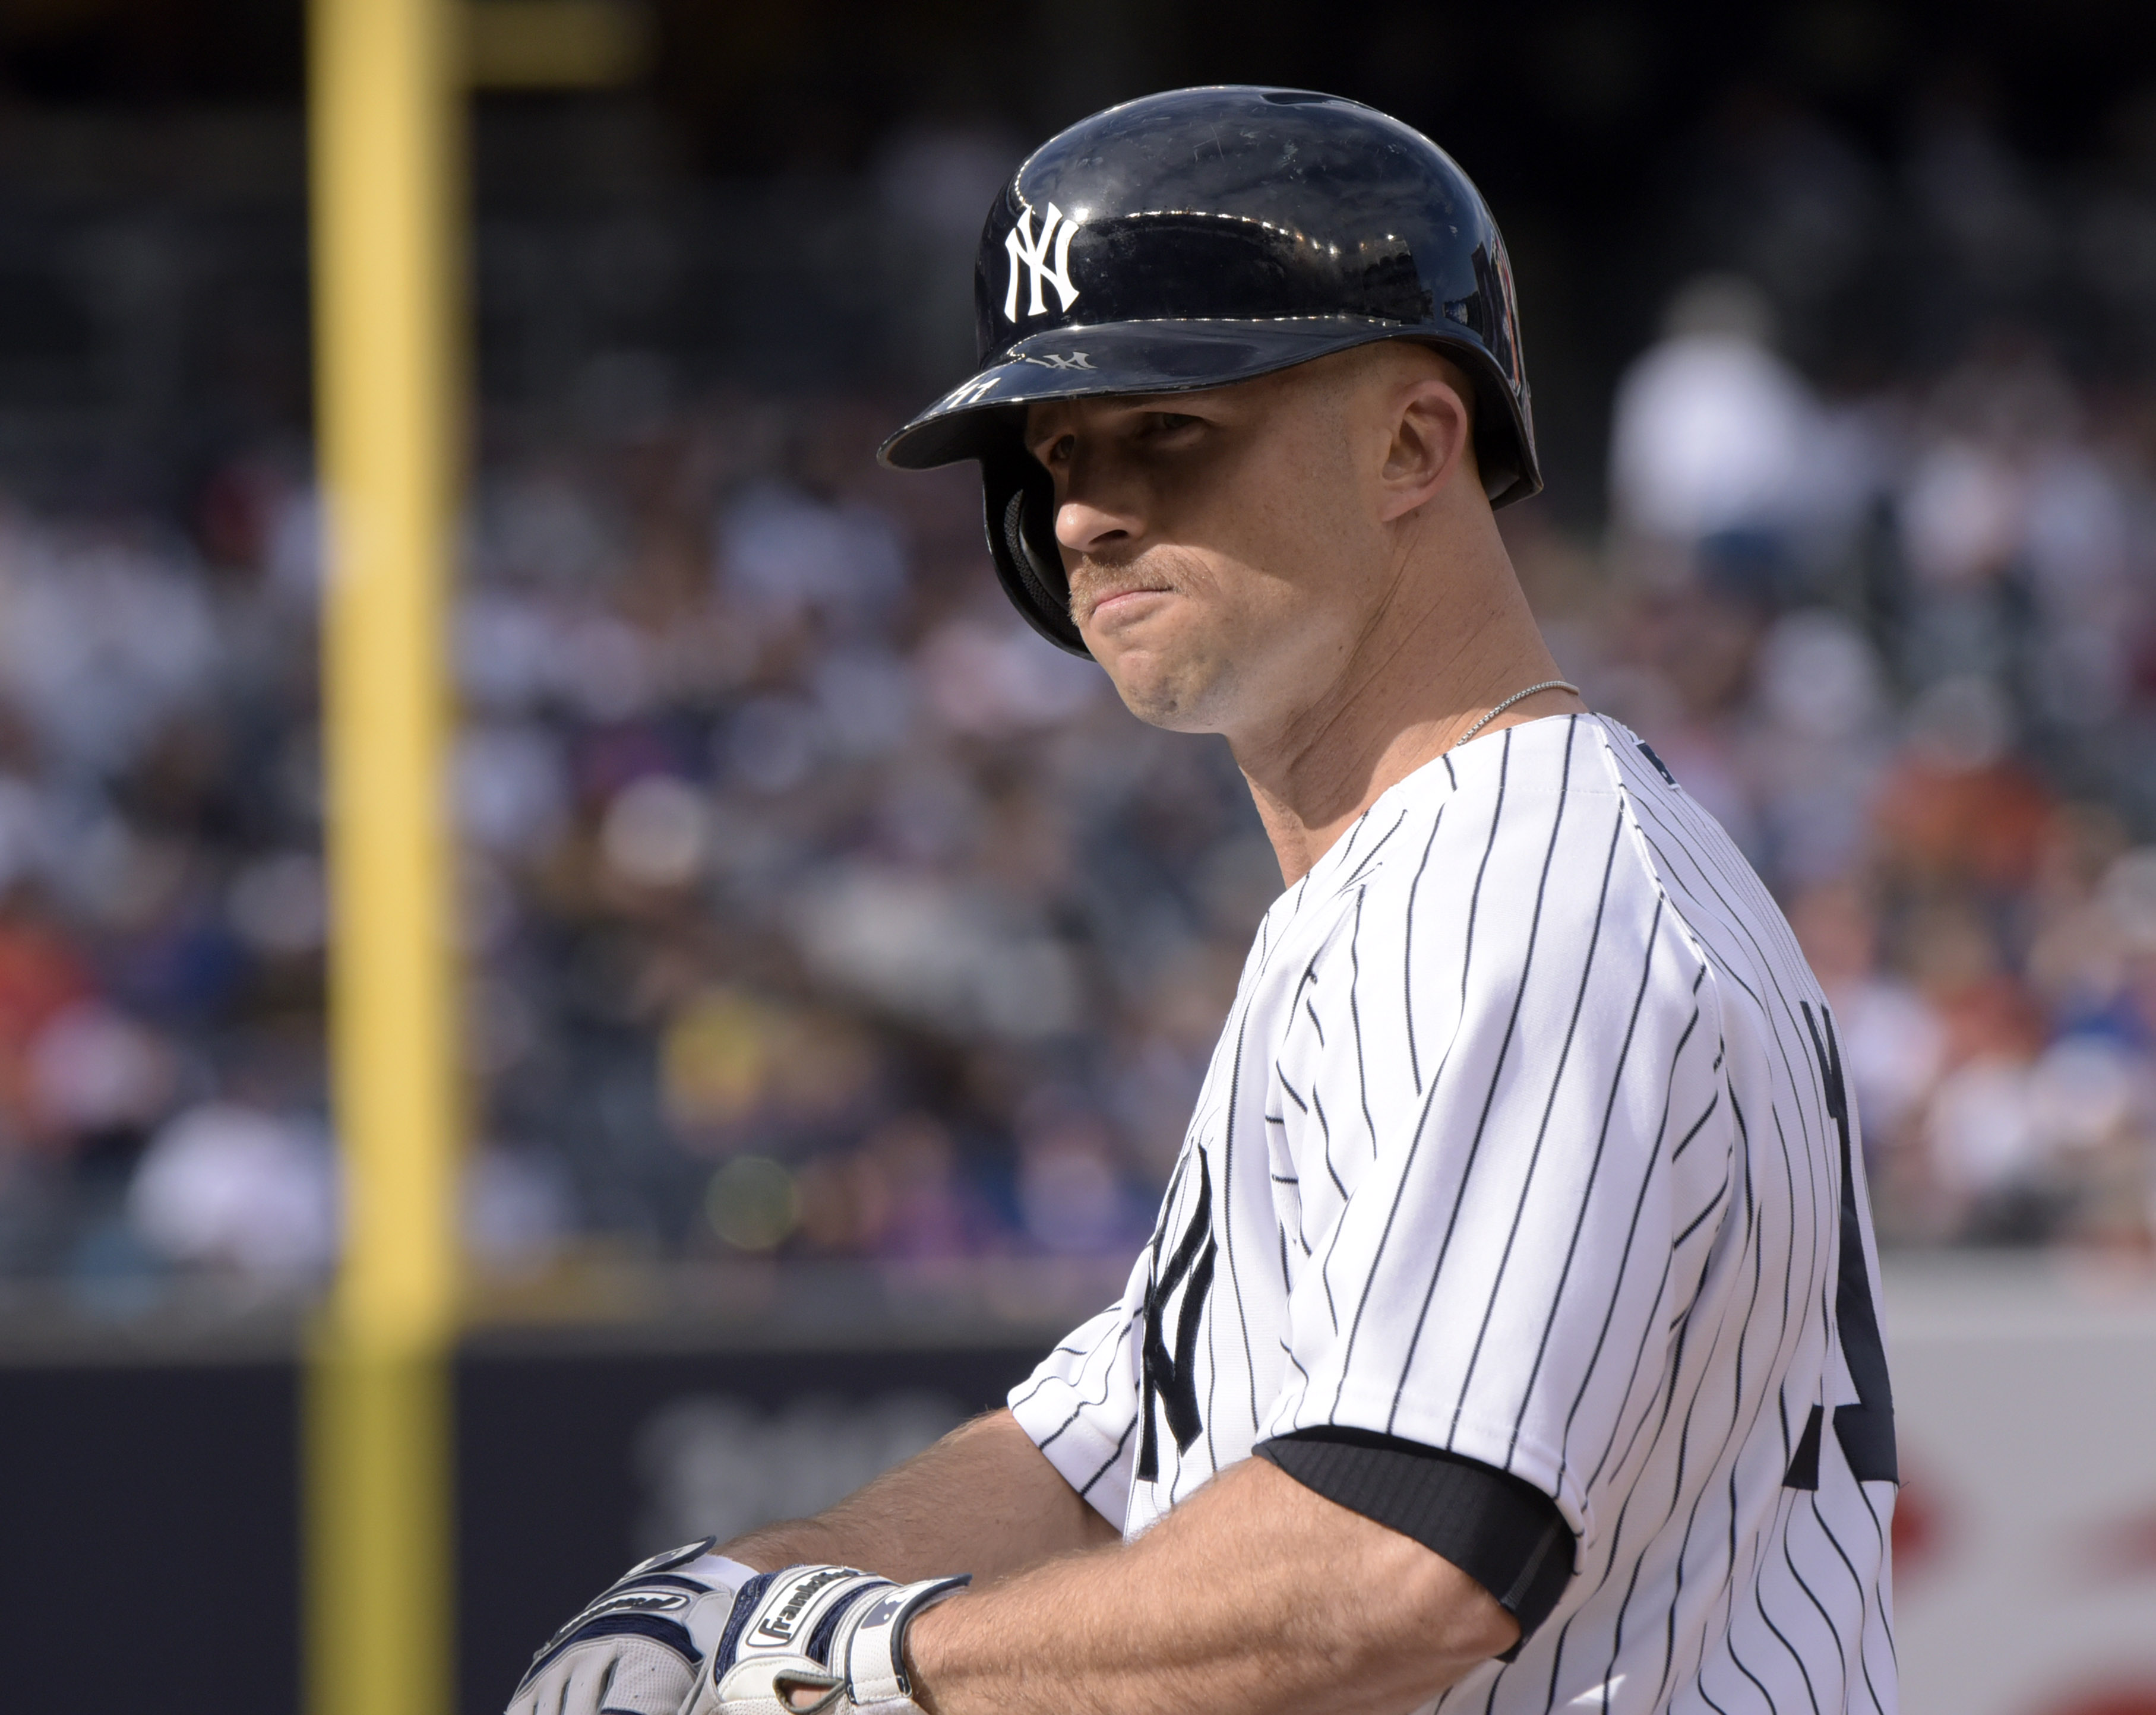 New York Yankees' Brett Gardner sports a mustache as he stands on first base after drawing a walk during the third inning of an interleague baseball game agains the New York Mets Saturday, April 25, 2015, at Yankee Stadium in New York. (AP Photo/Bill Kost